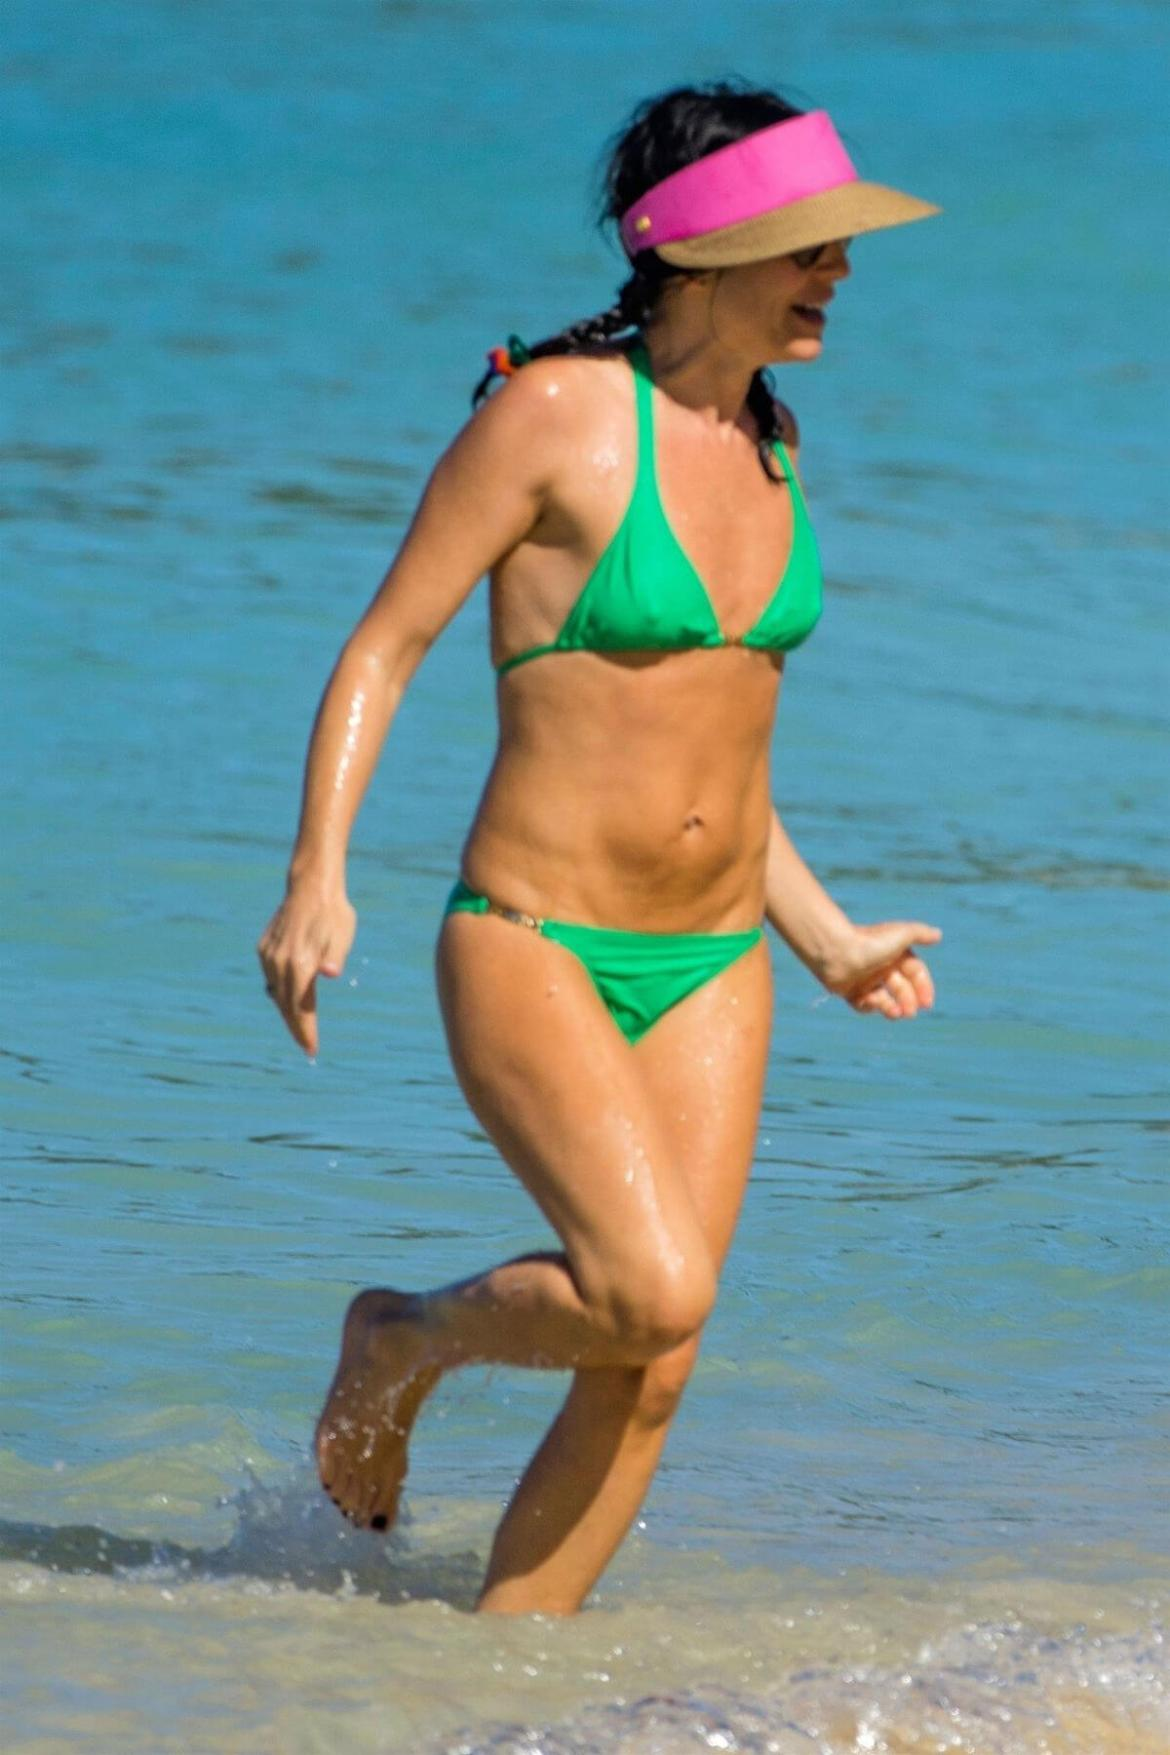 Andrea Corr in Bikini at a Beach in Barbados 2018/12/24